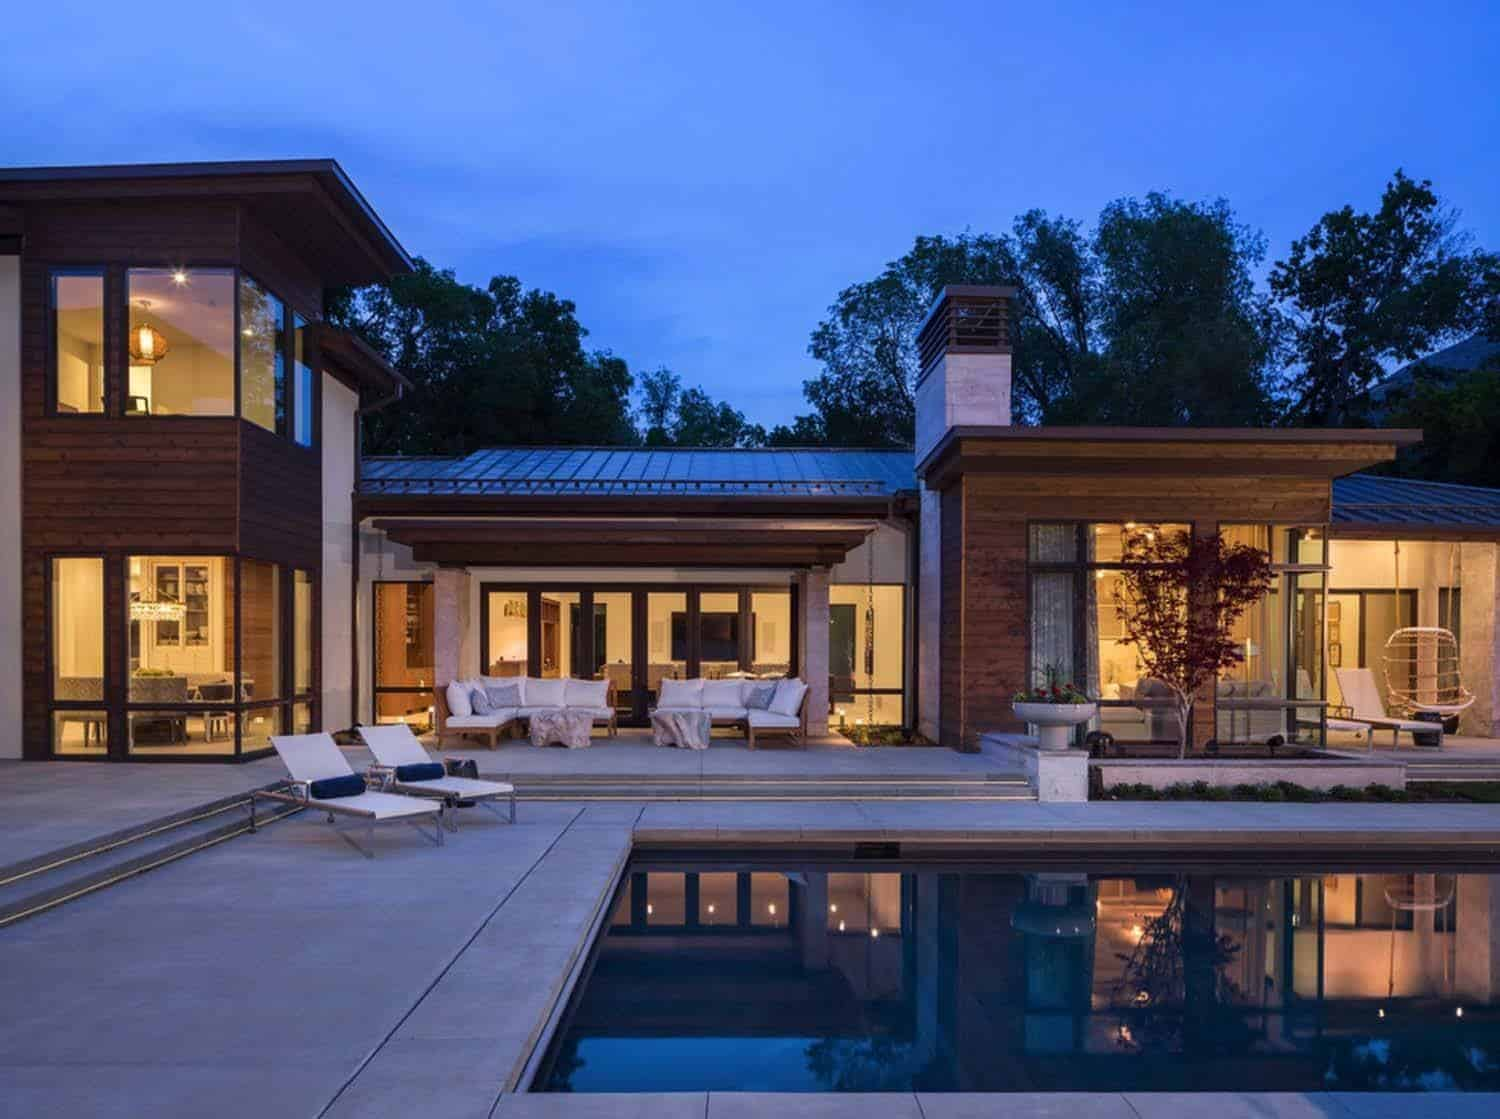 Modern-Residence-Think Architecture-04-1 Kindesign